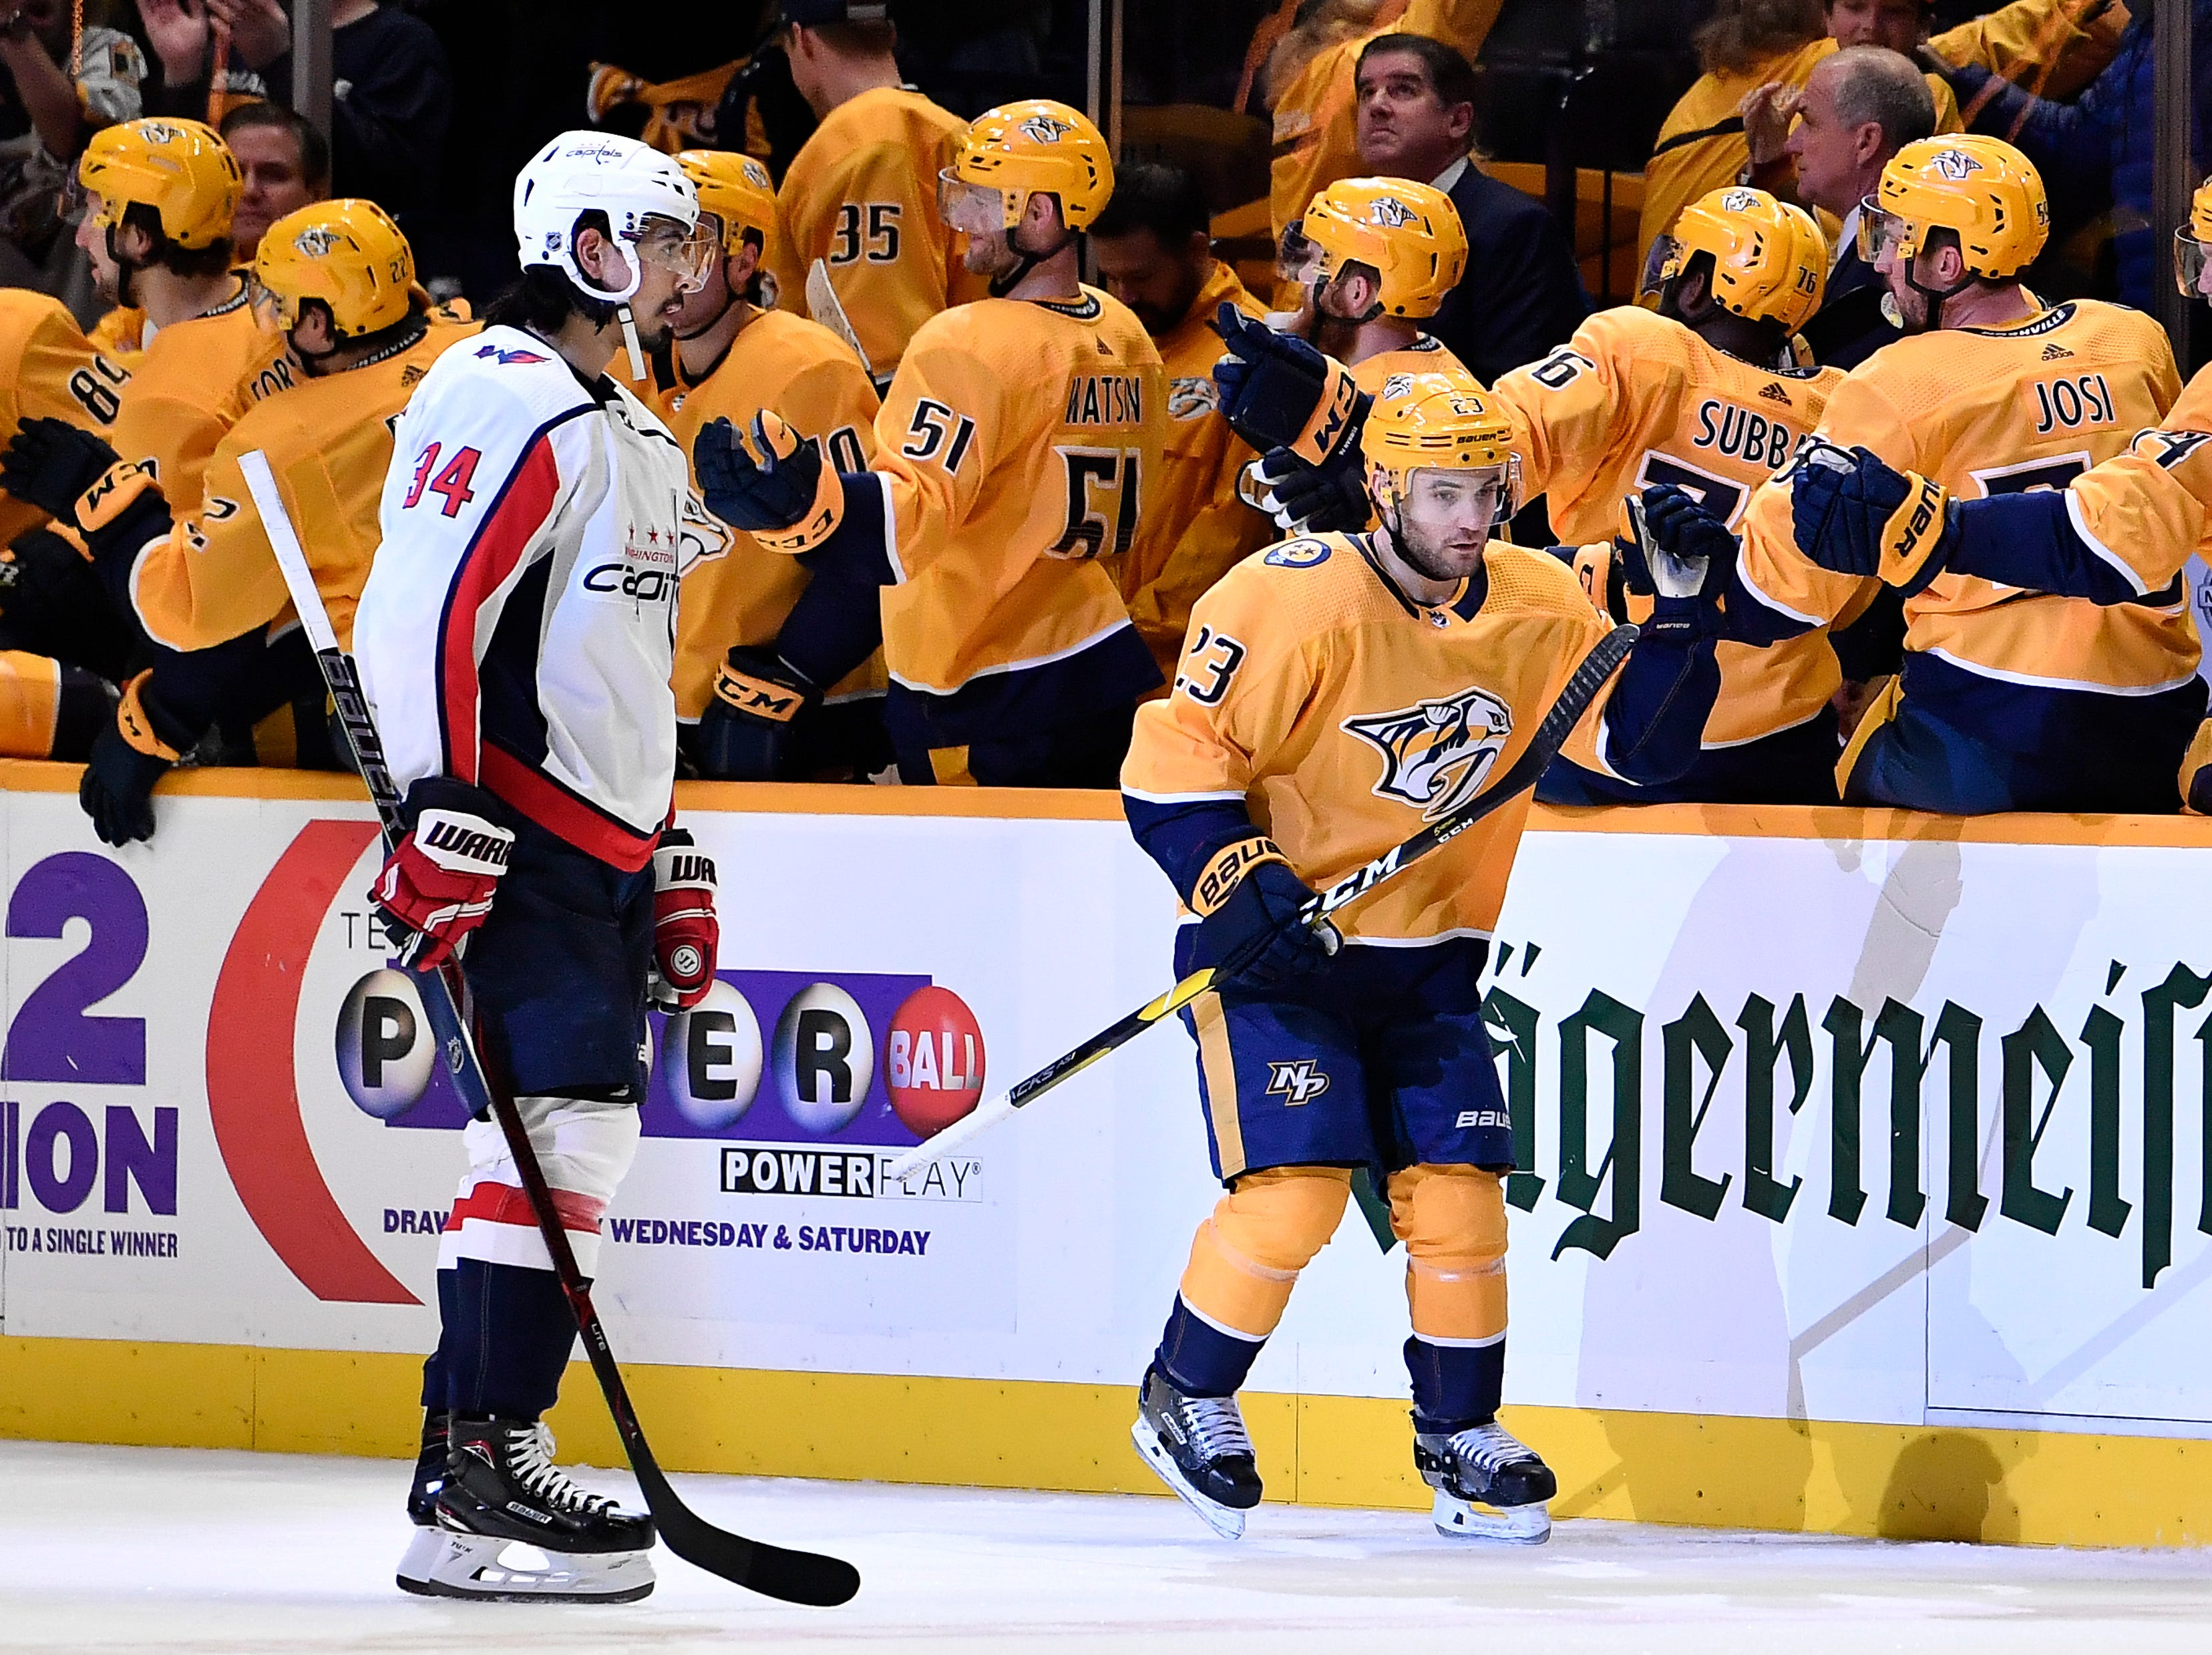 Predators center Rocco Grimaldi (23) is congratulated after his goal against the Capitals during the second period at Bridgestone Arena Tuesday, Jan. 15, 2019, in Nashville, Tenn.